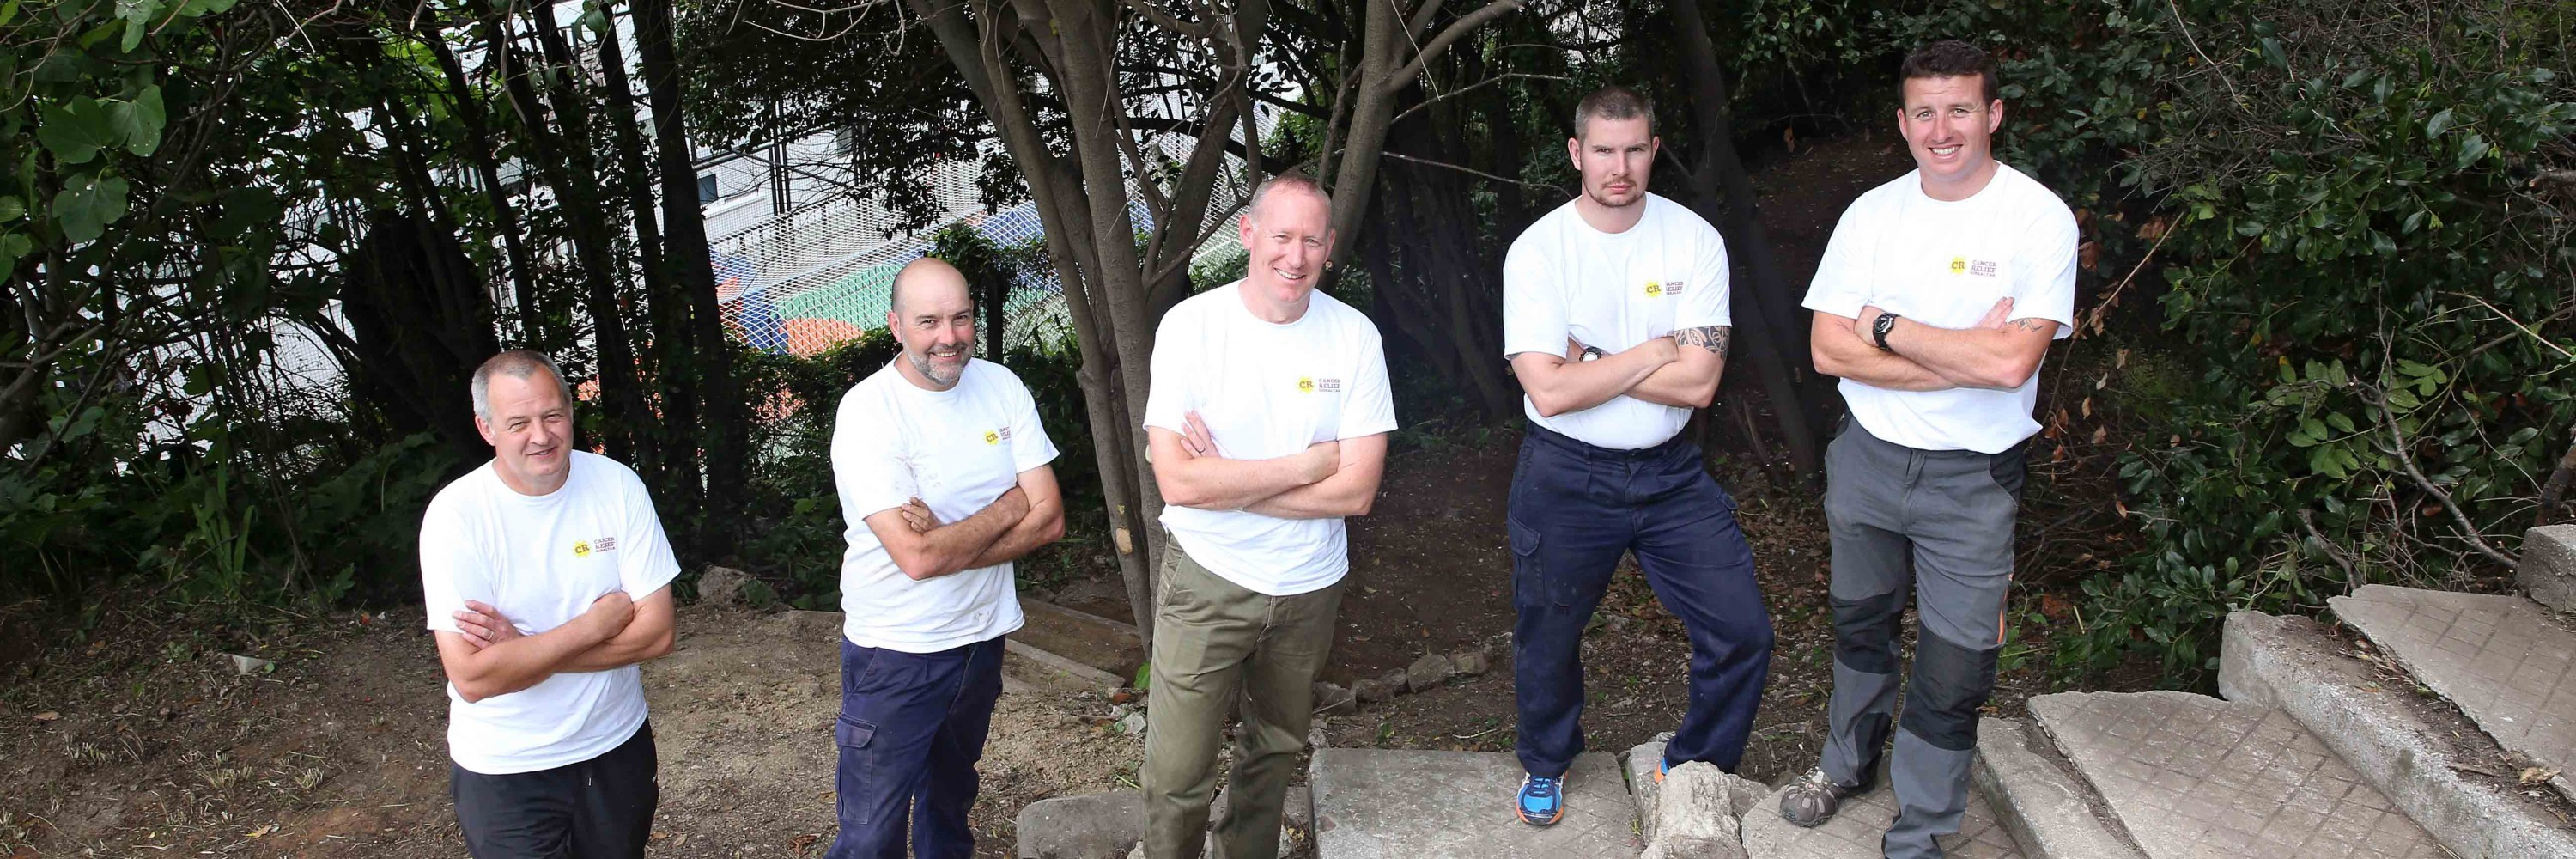 Staff from HQ British Forces Gibraltar volunteer to help out clearing an overgrown garden at the Cancer Relief House.